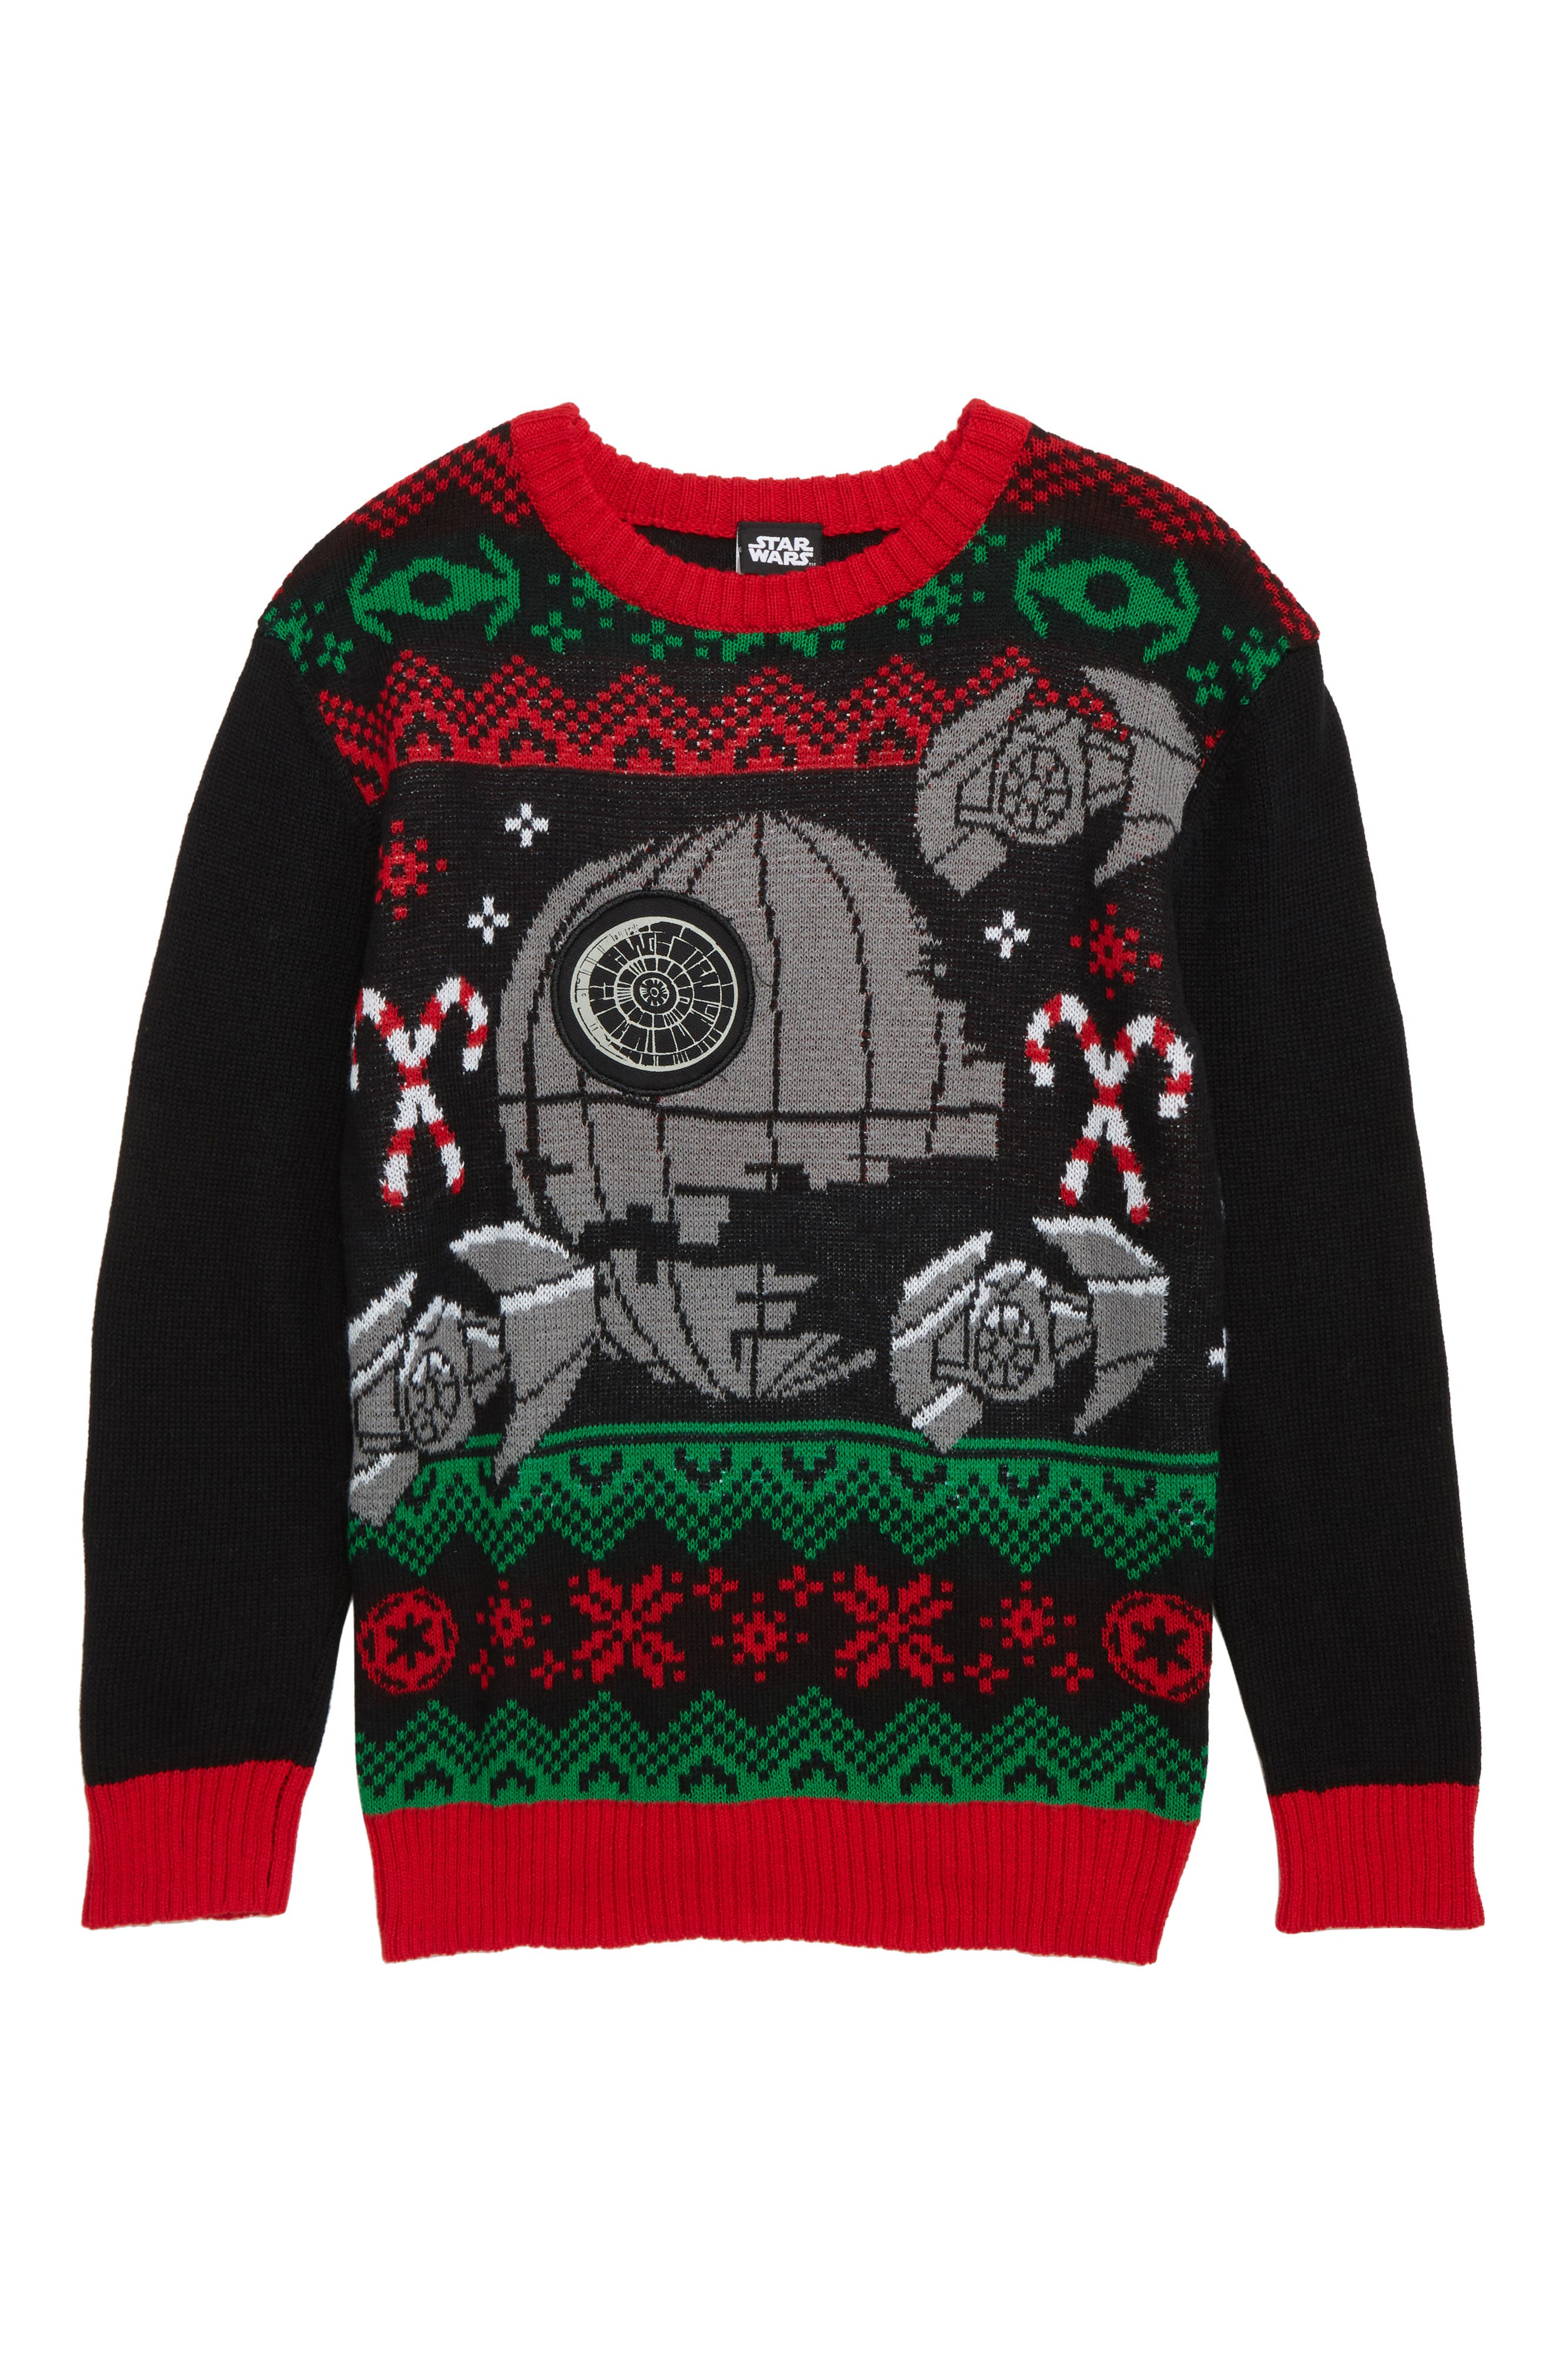 Star wars xmas gifts for women